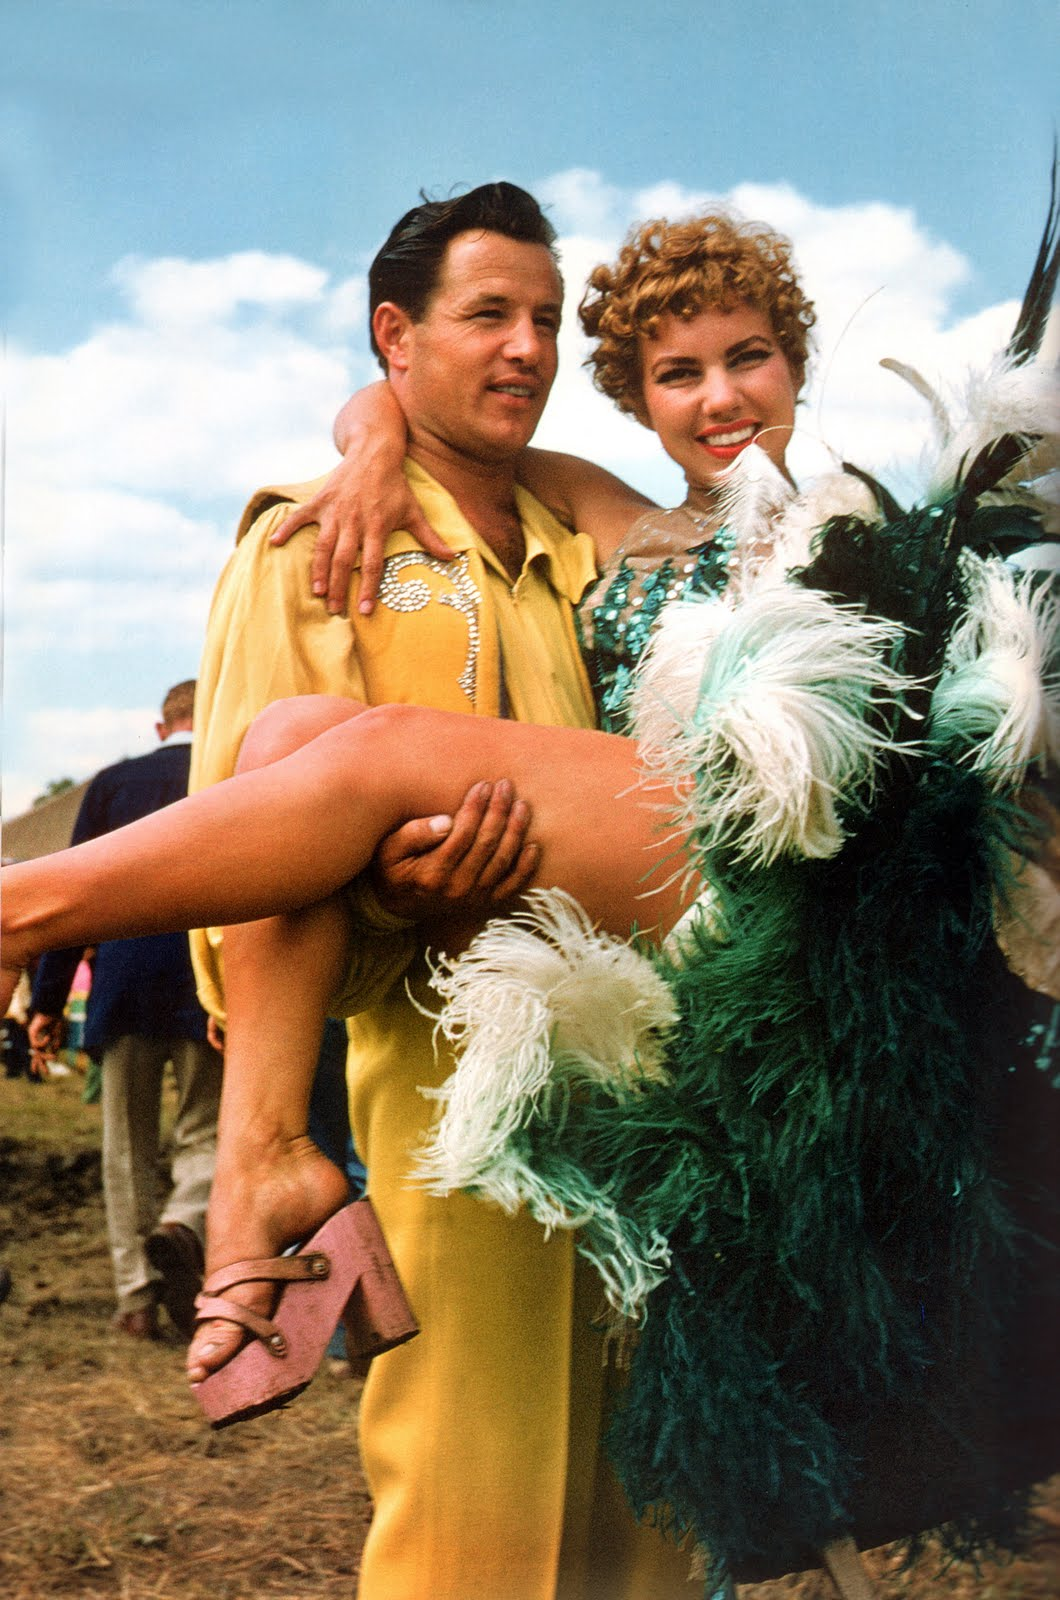 showgirl-circus-performer-couple-1954